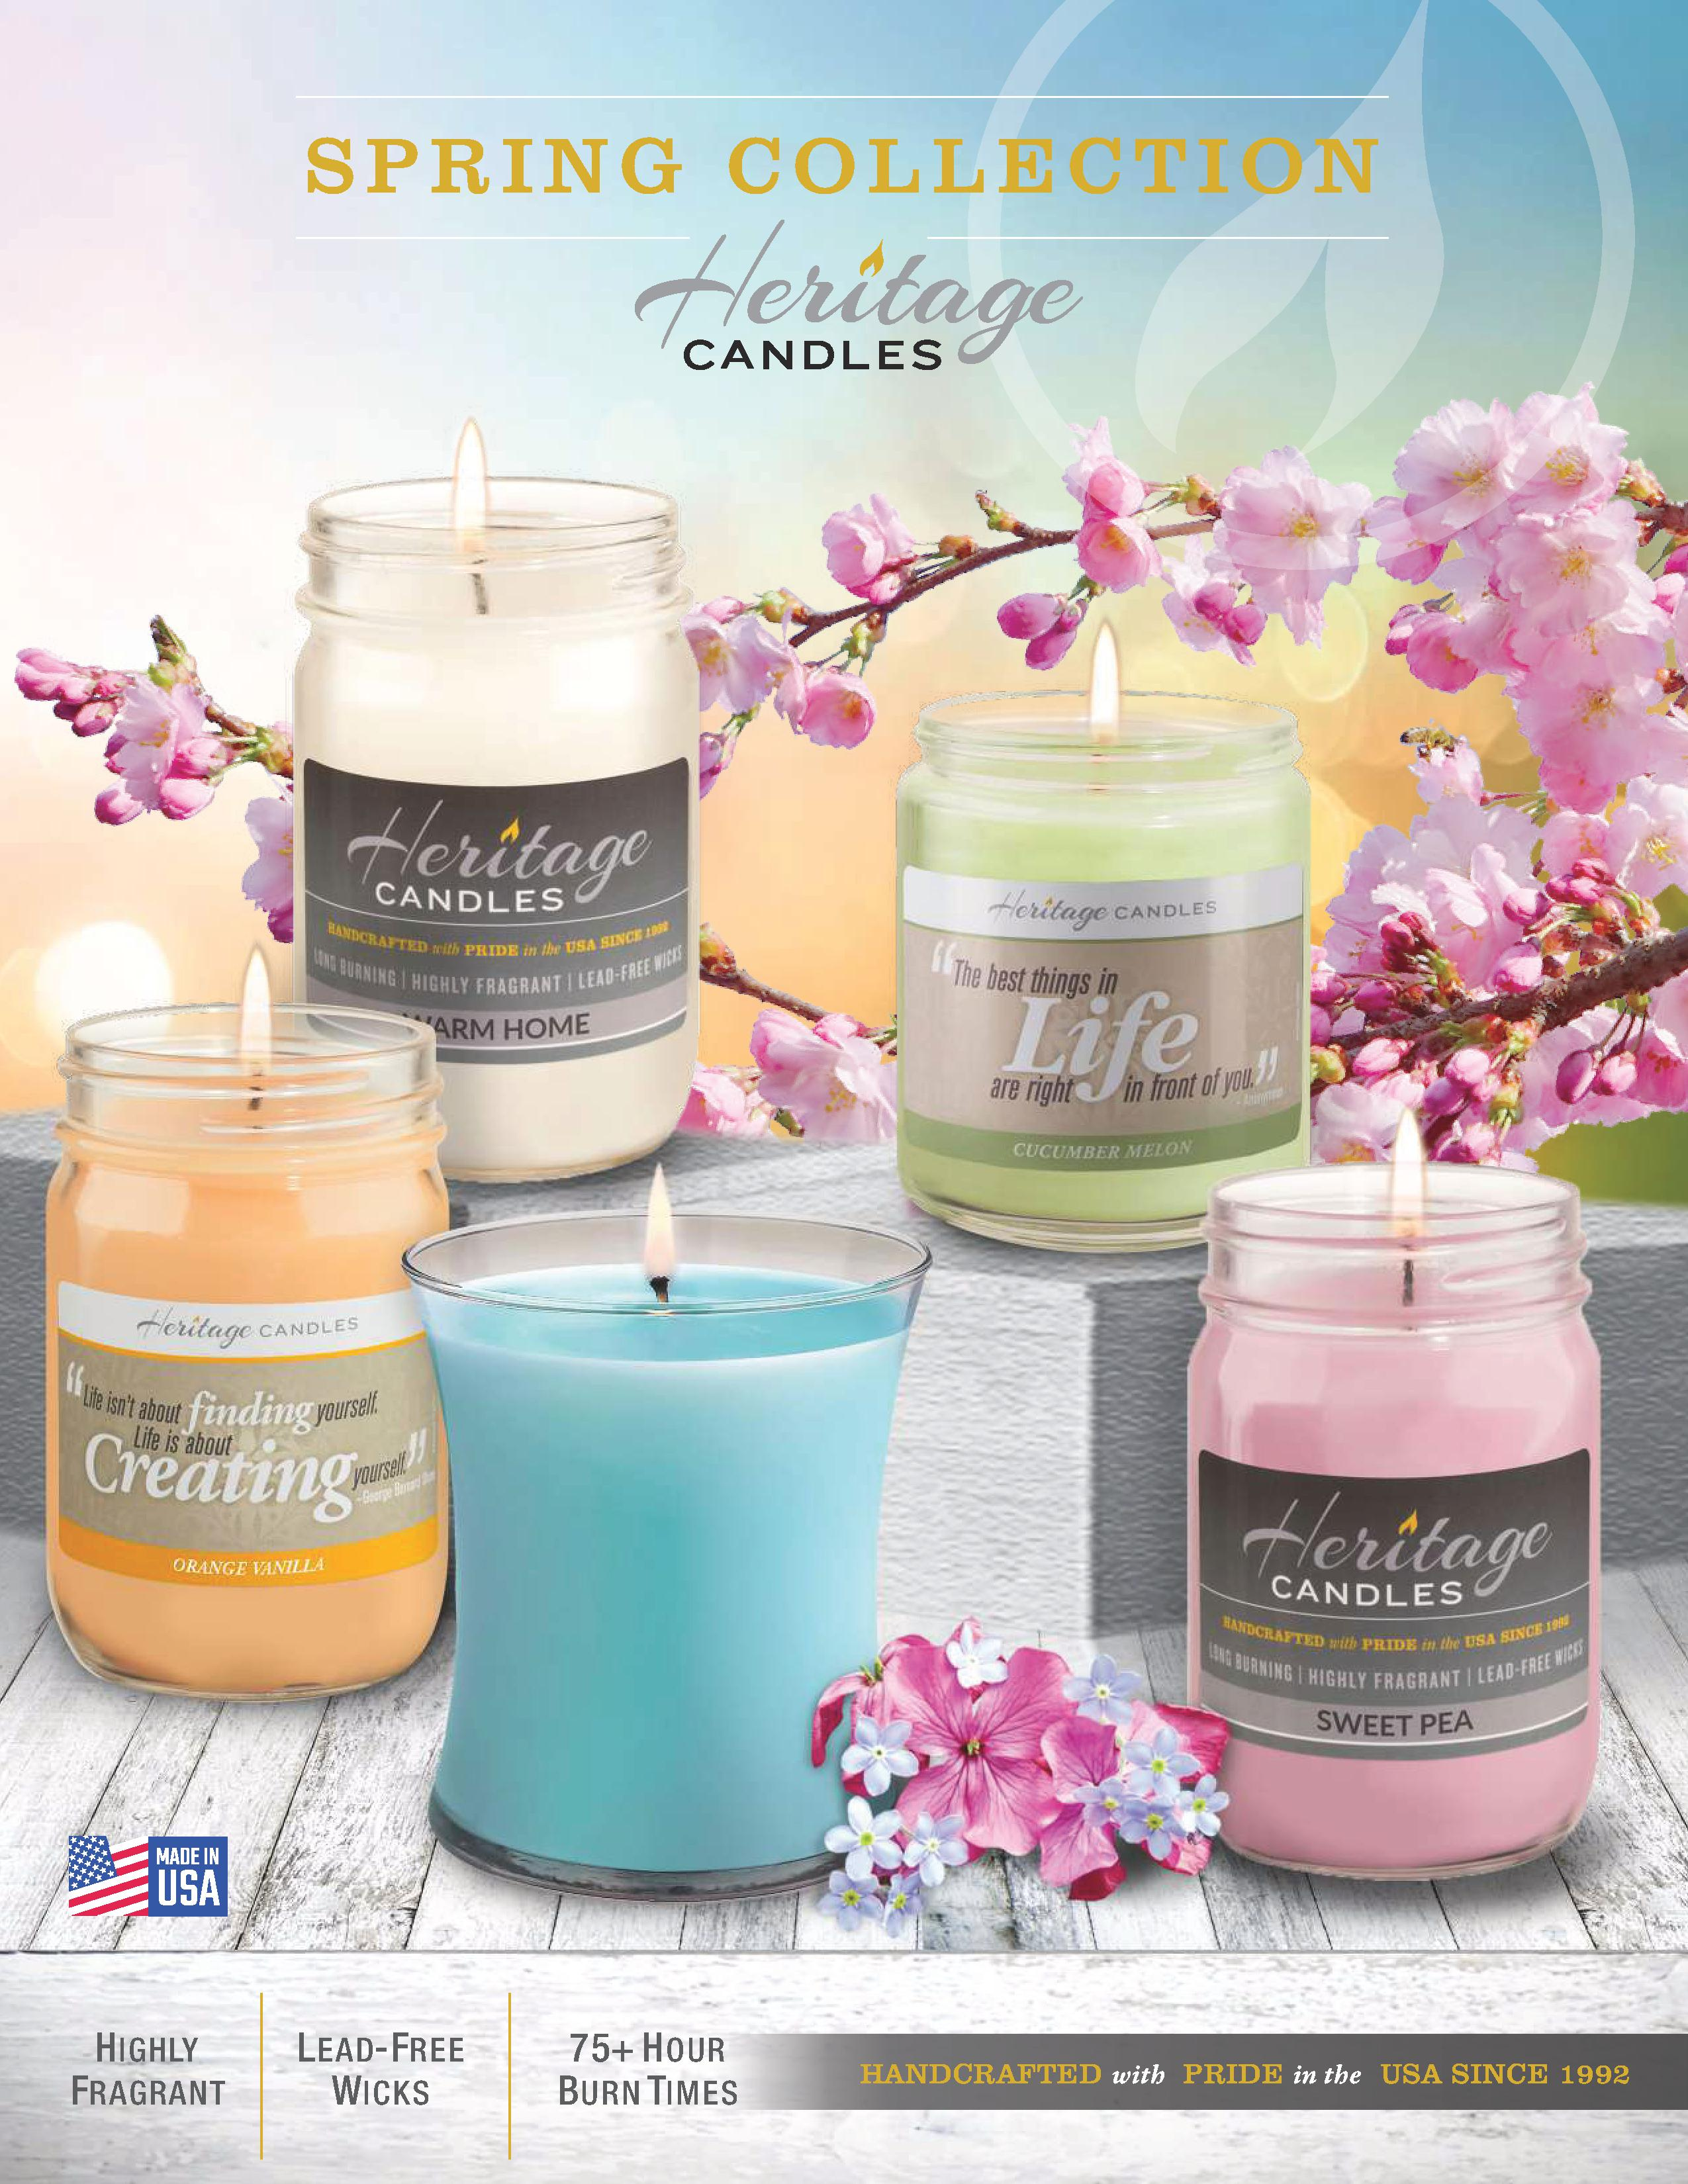 Heritage Candles Spring Fundraiser